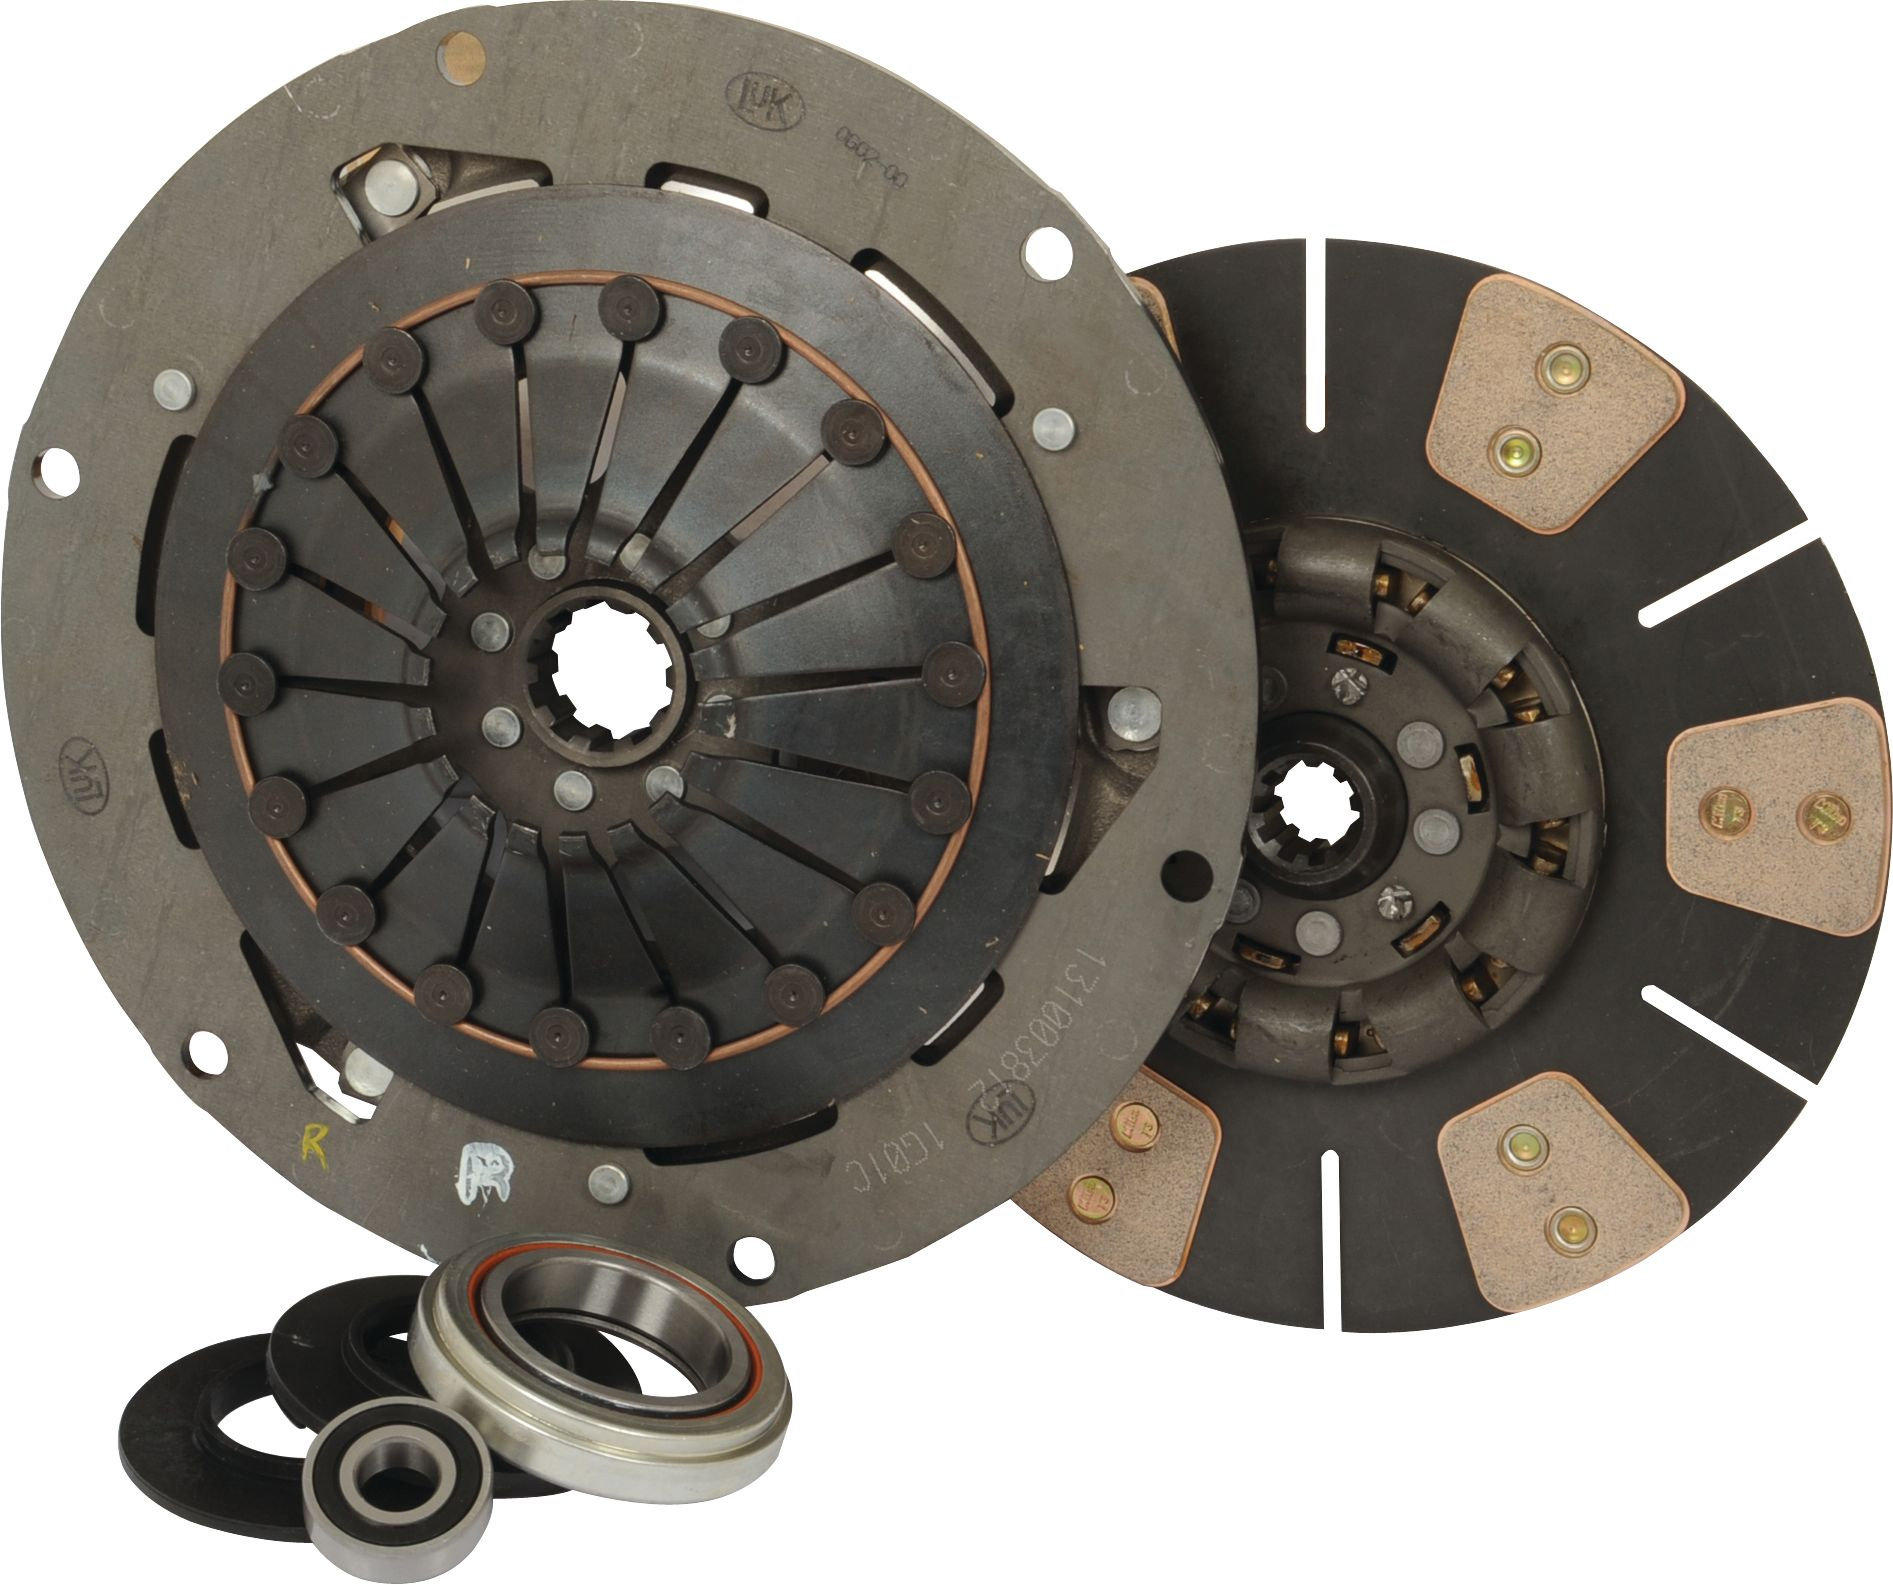 CASE IH CLUTCH KIT WITH BEARINGS